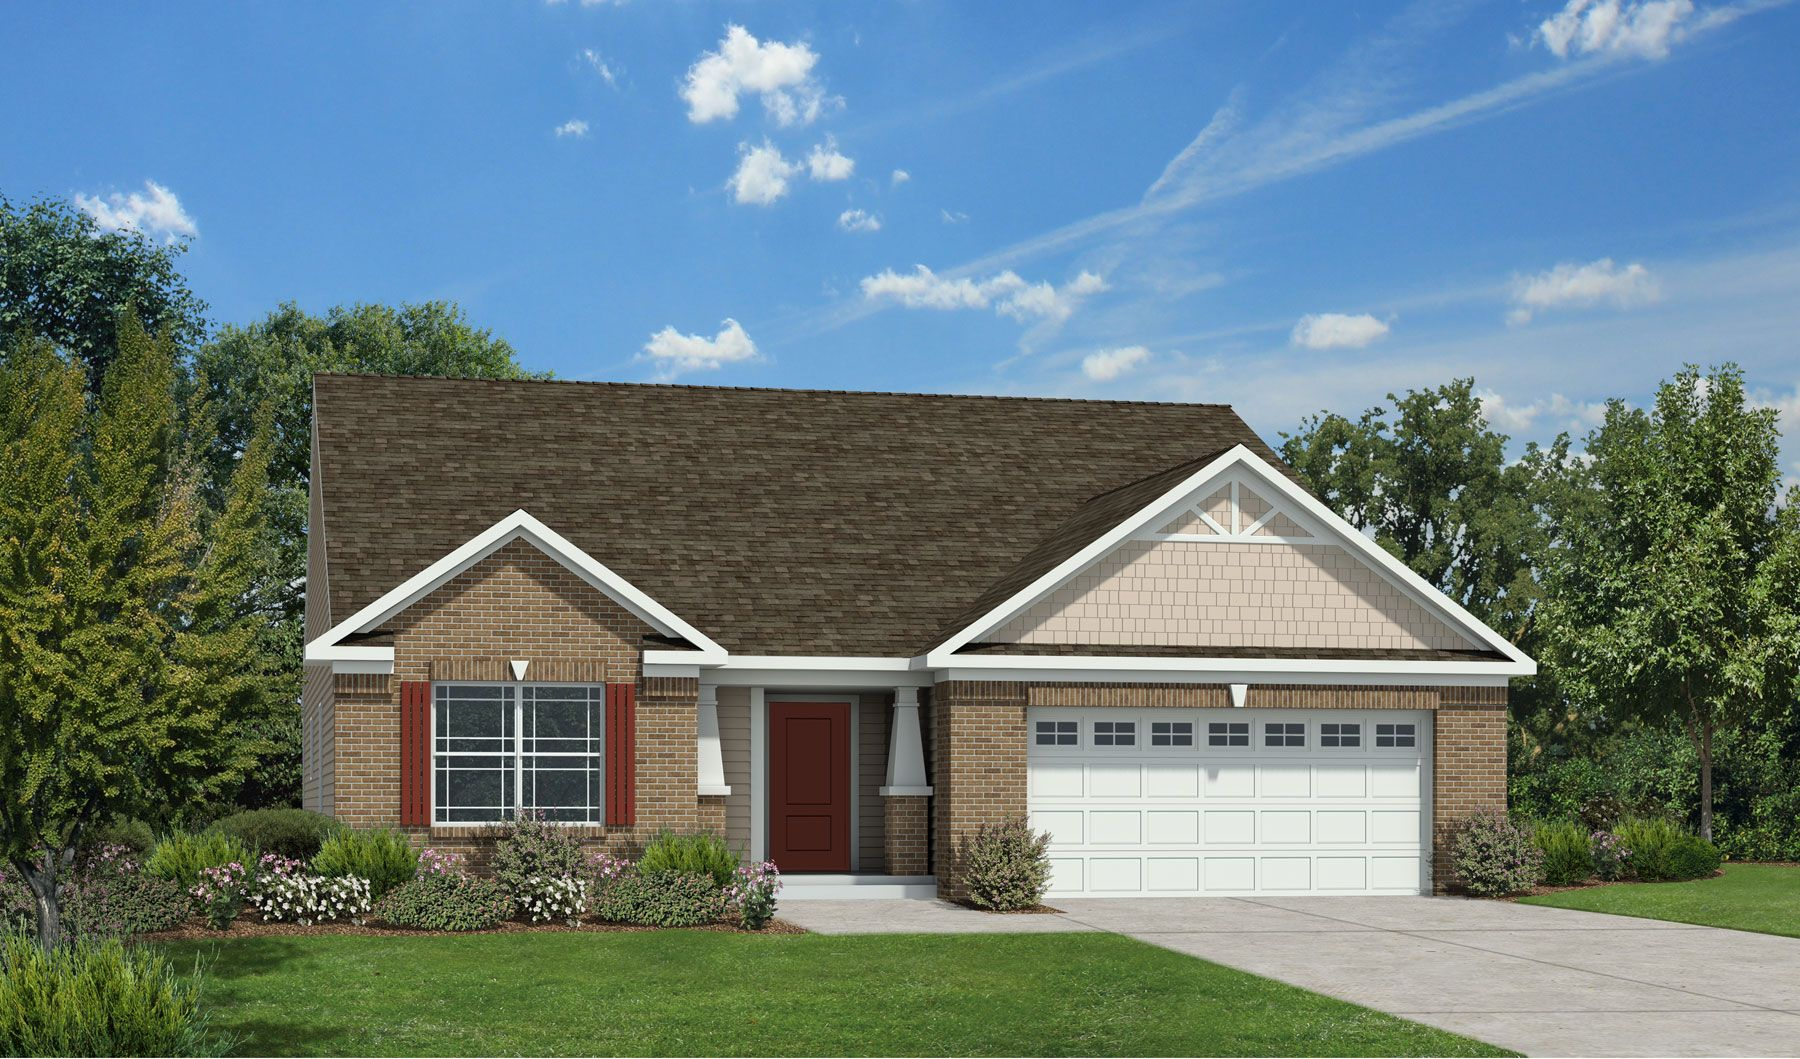 Hawthorne - Winding Ridge-Fairways East: Indianapolis, IN - Westport Homes of Indianapolis